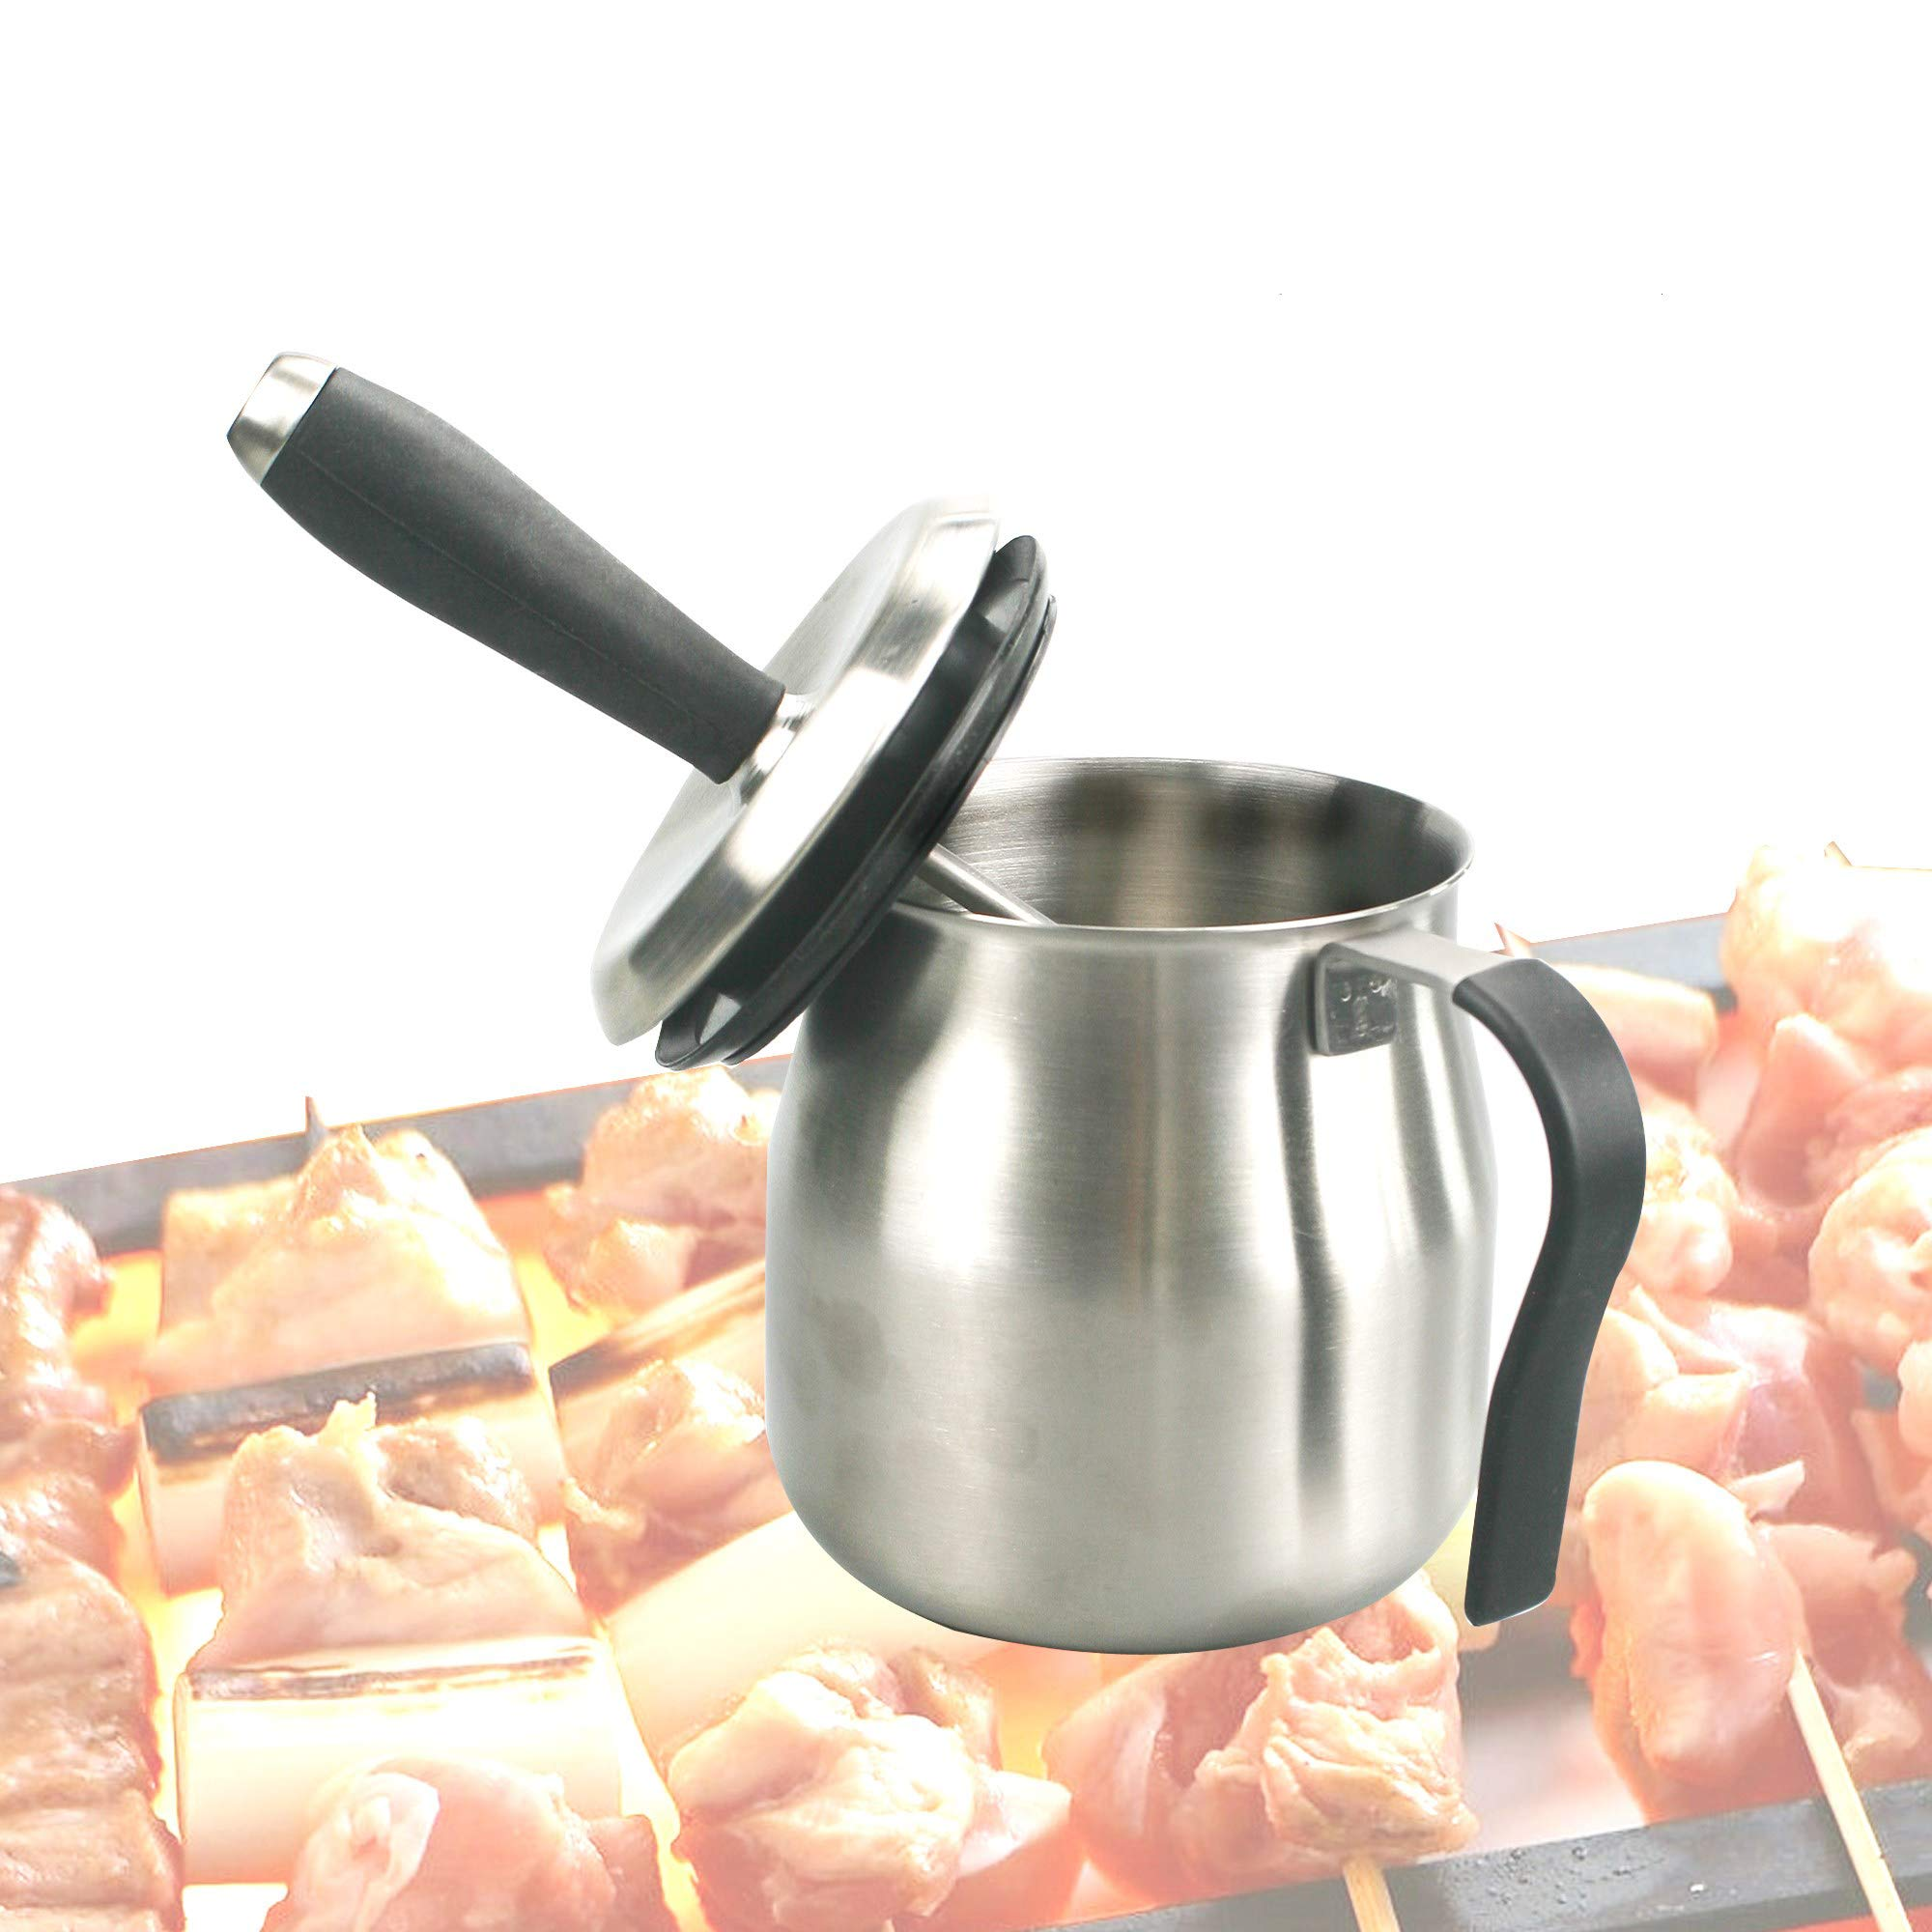 Qidea BBQ Basting Pot with Basting Brush - Stainless Steel Barbecue Sauce Pot with Silicon Basting Brush by, 32 OZ by Qidea